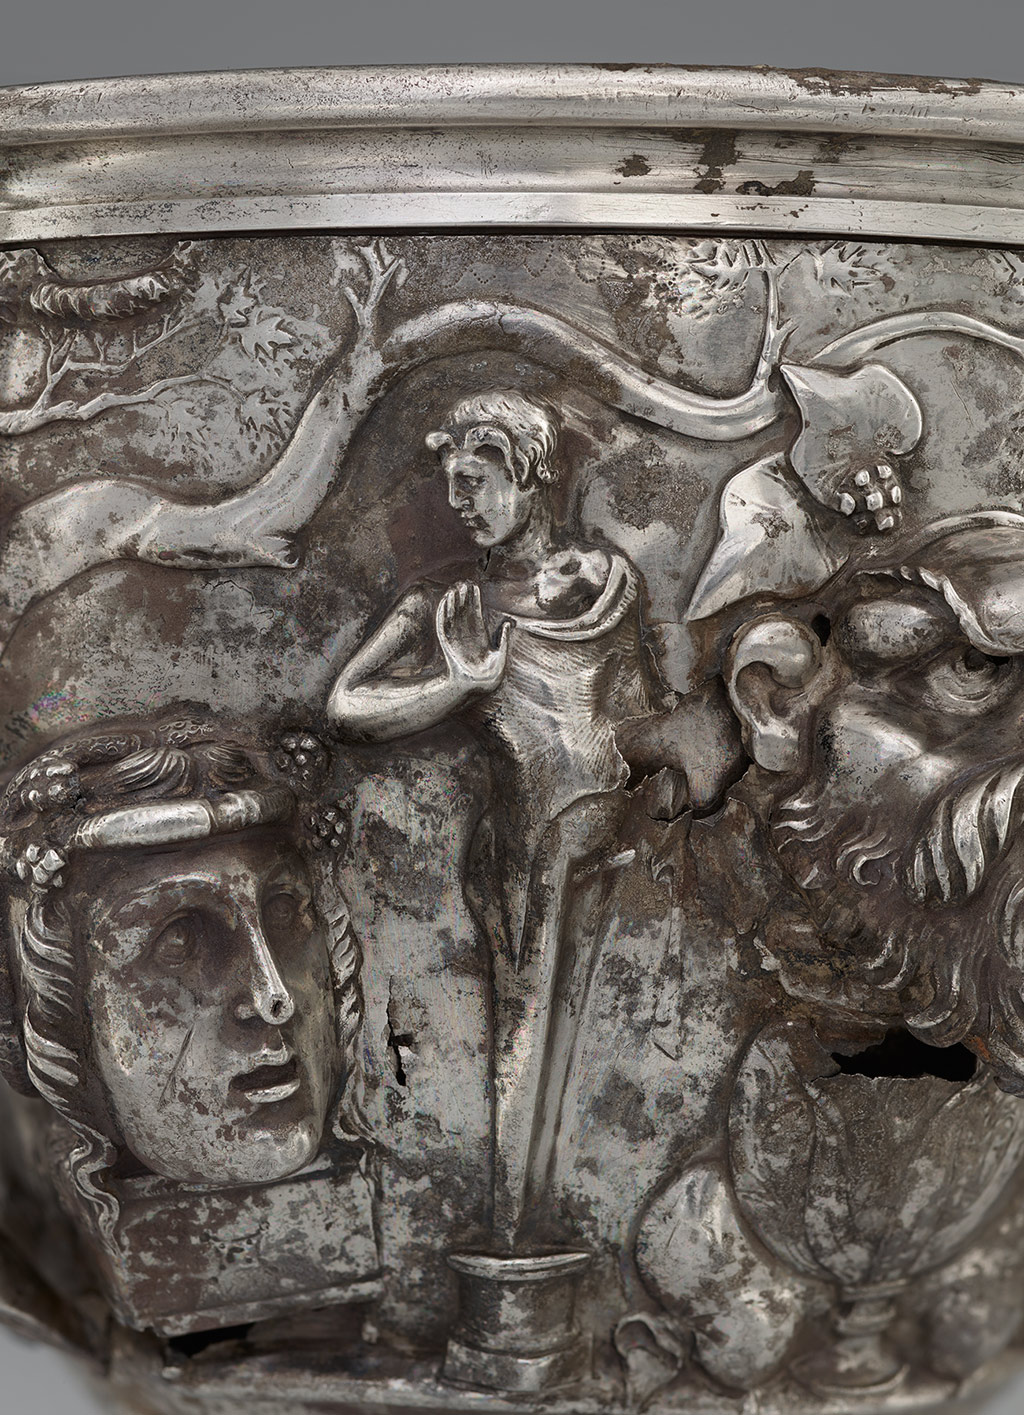 Mercury makes a hand gesture for a mystery cult in on ancient Roman silver cup